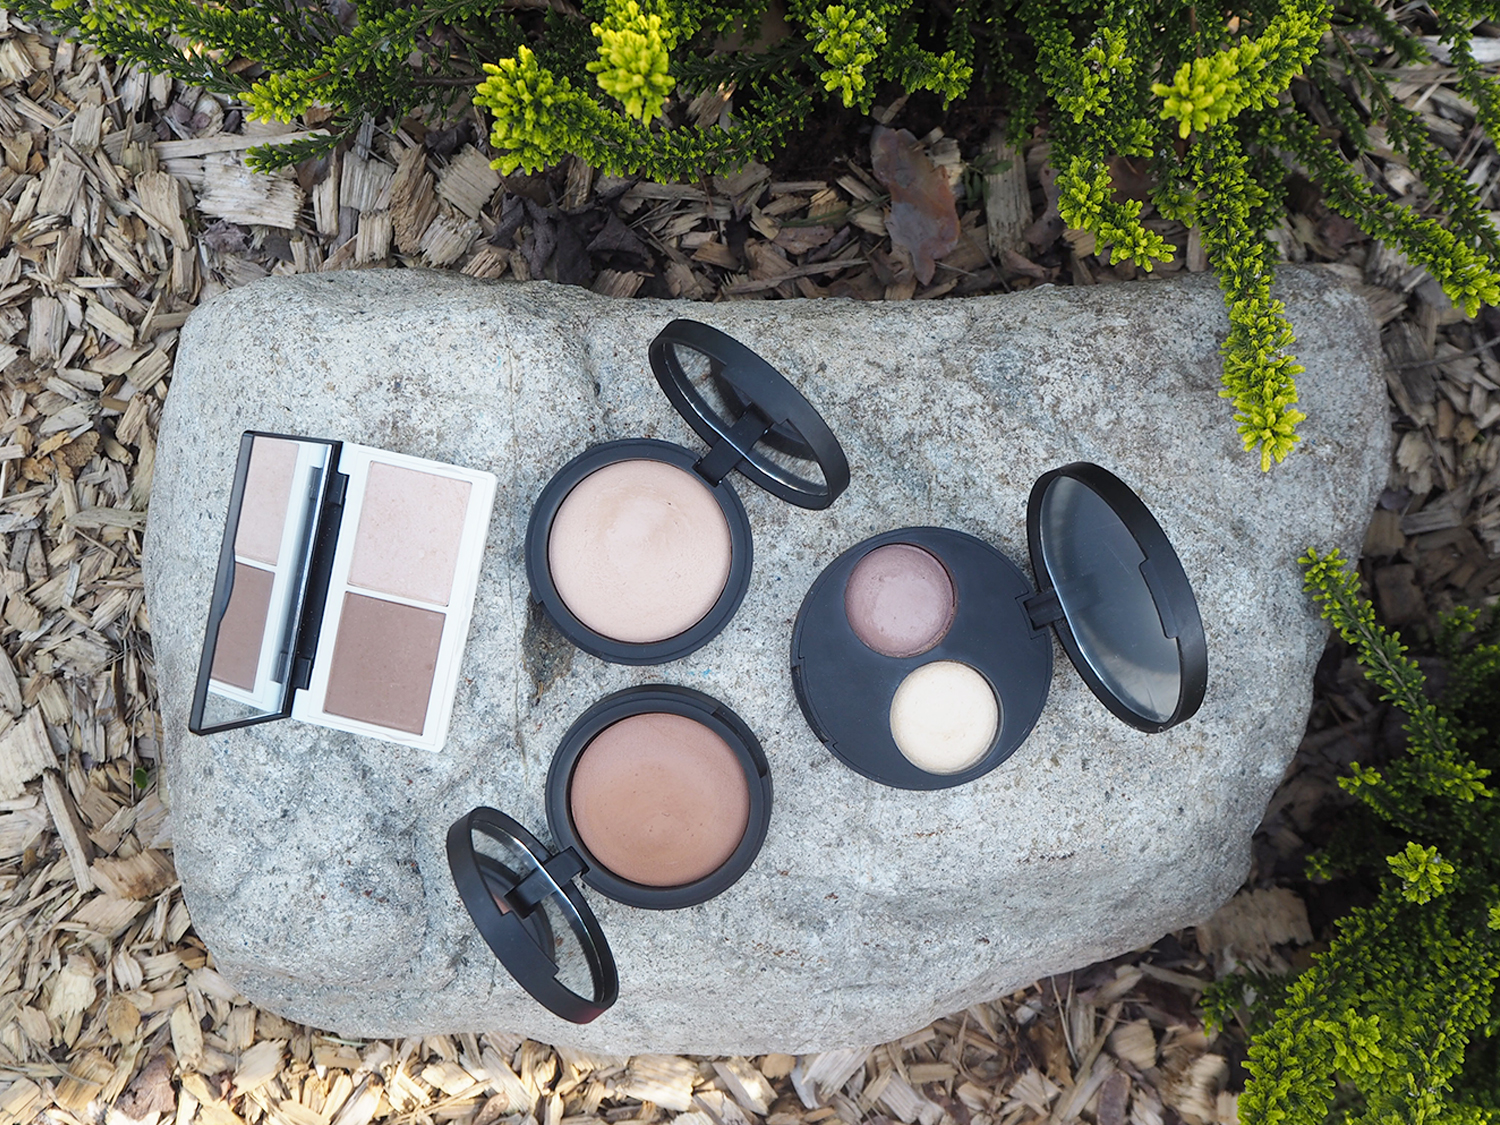 Lily Lolo Contour Duo, inika Baked Mineral Foundation Inspiration, Wisdom und inika Baked Contour Duo Teak